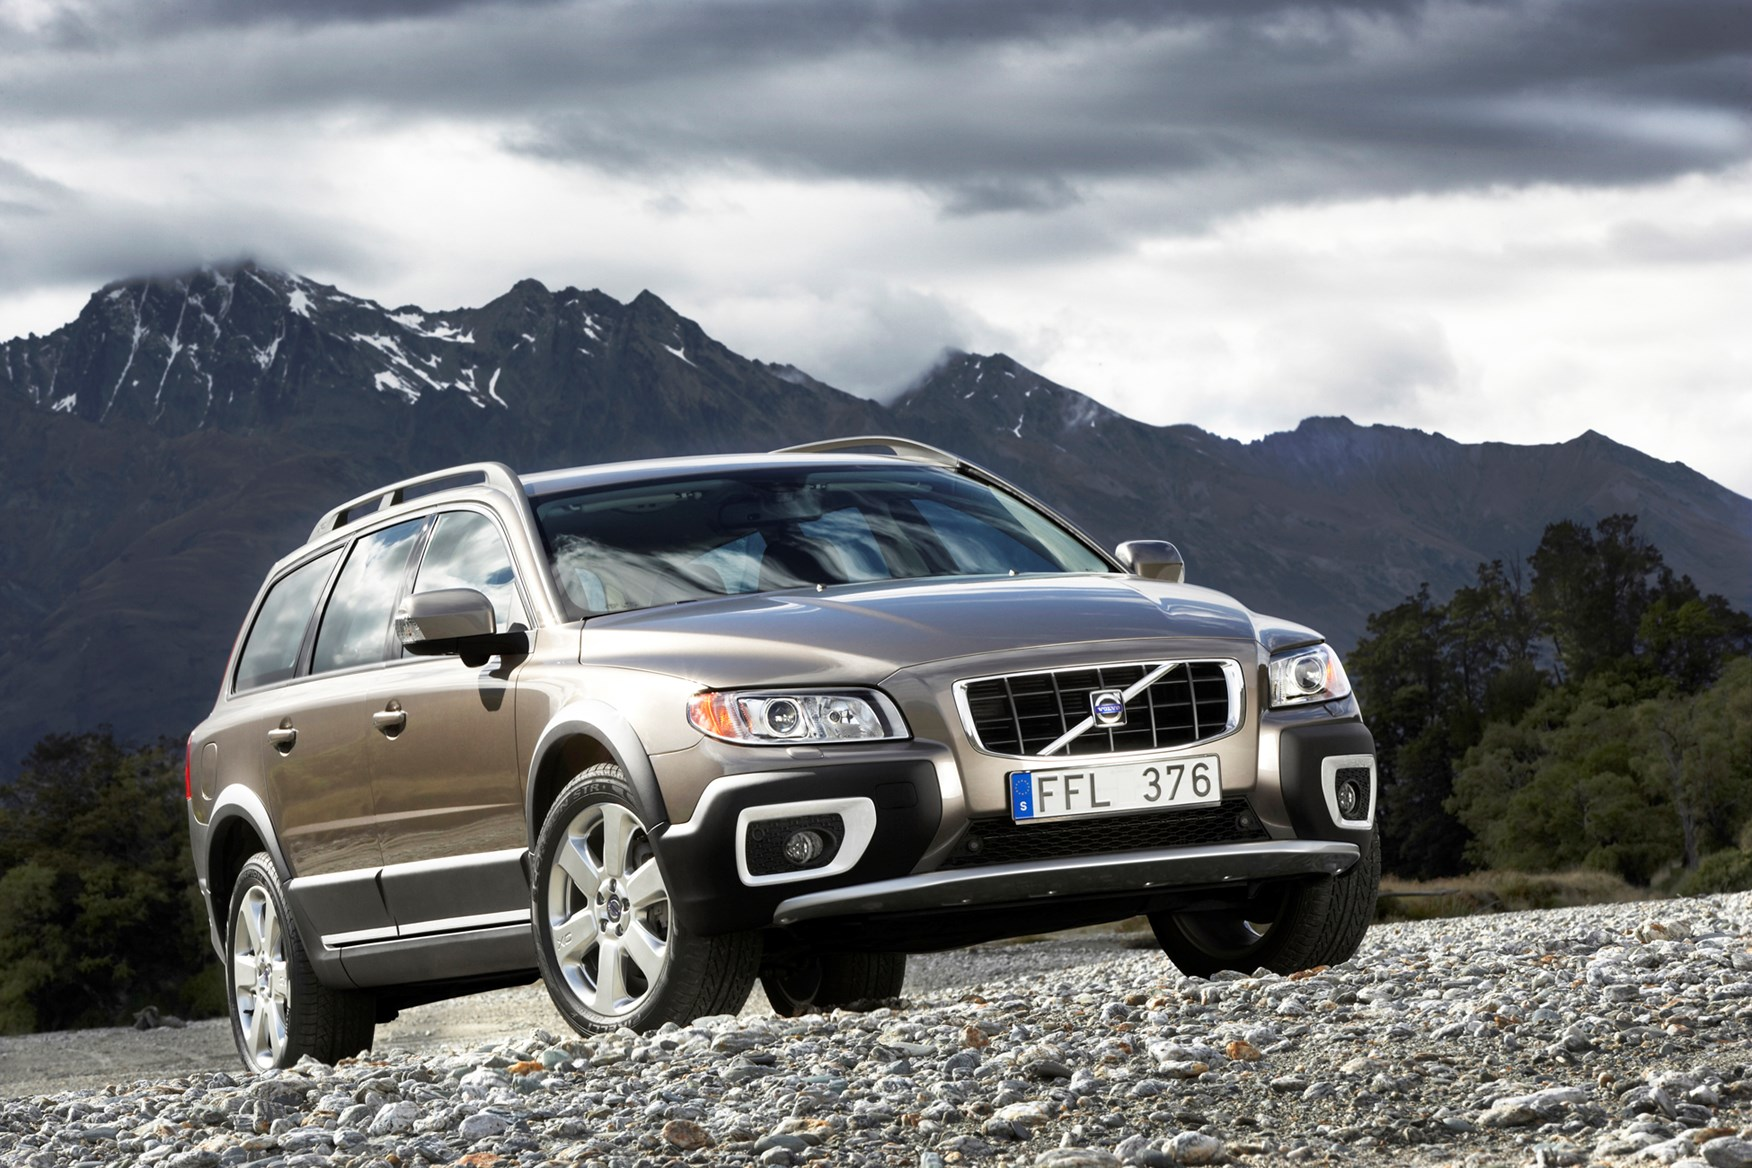 Volvo XC70 Estate Review (2007 - 2016) | Parkers